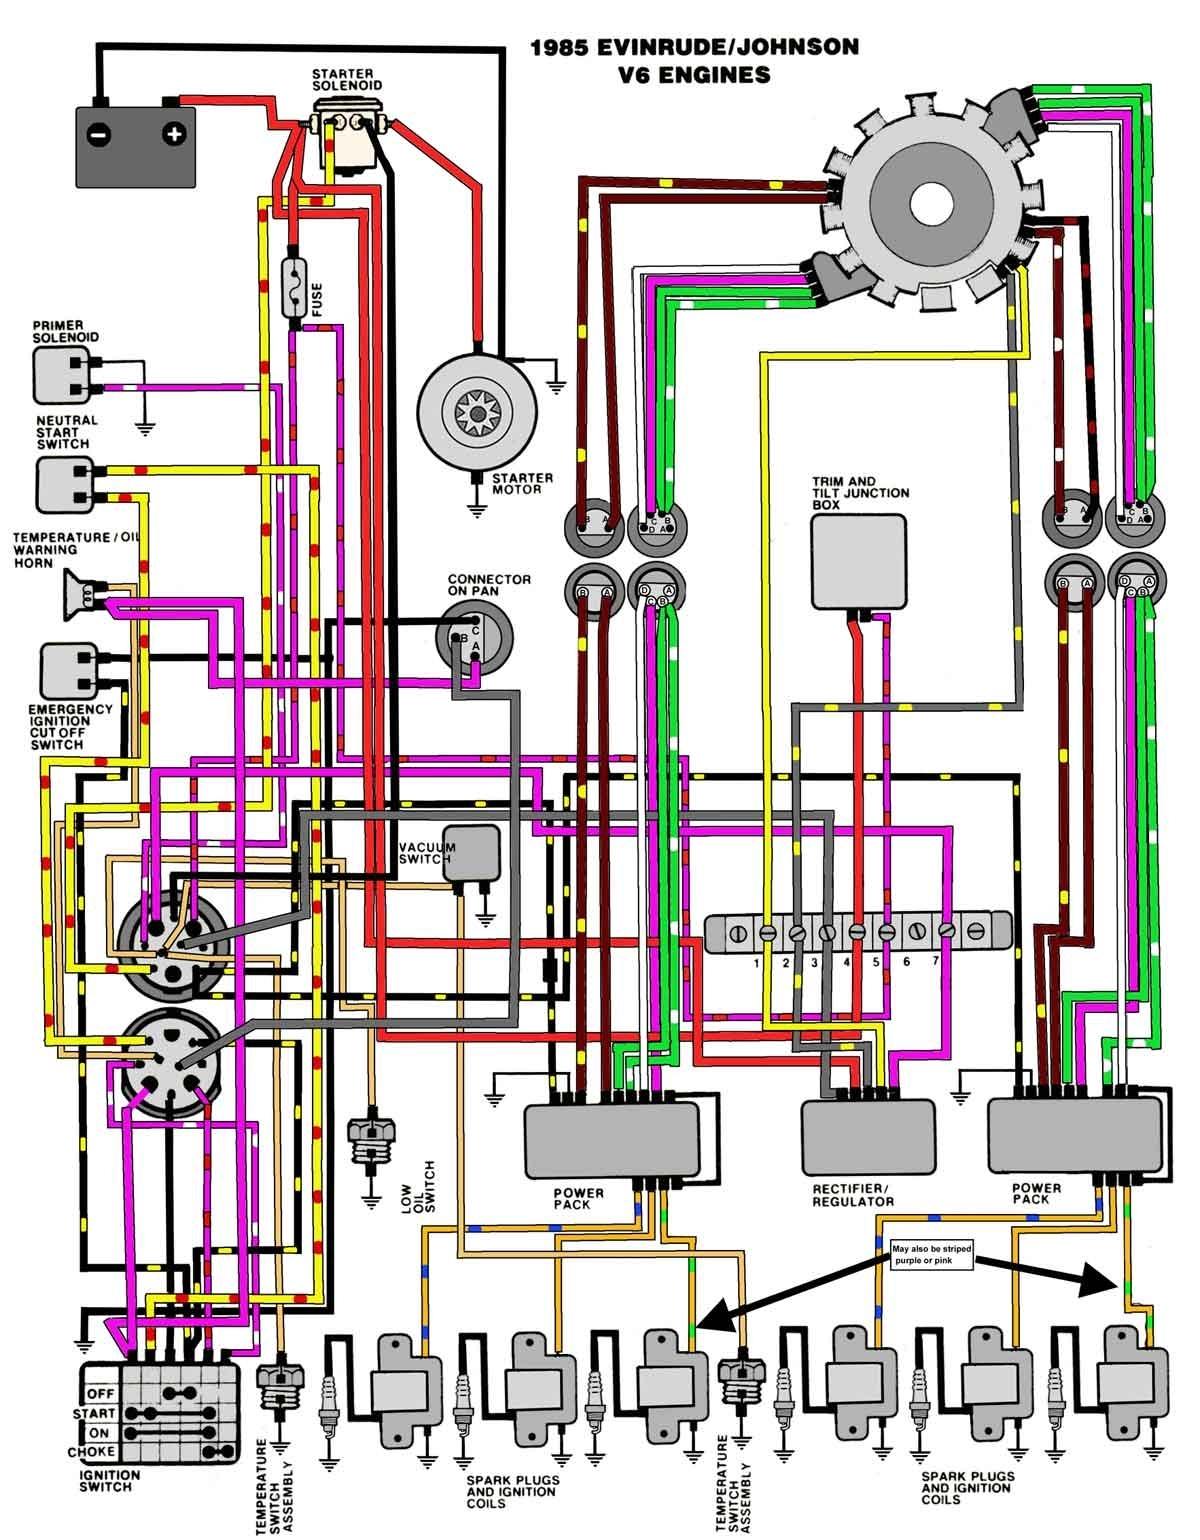 Omc Wiring Harness Diagram | Wiring Diagram 2019 on 70 hp johnson outboard wiring diagram, 70 hp evinrude outboard motor wiring diagram, 70 hp force outboard wiring diagram, 40 hp mariner outboard wiring diagram,